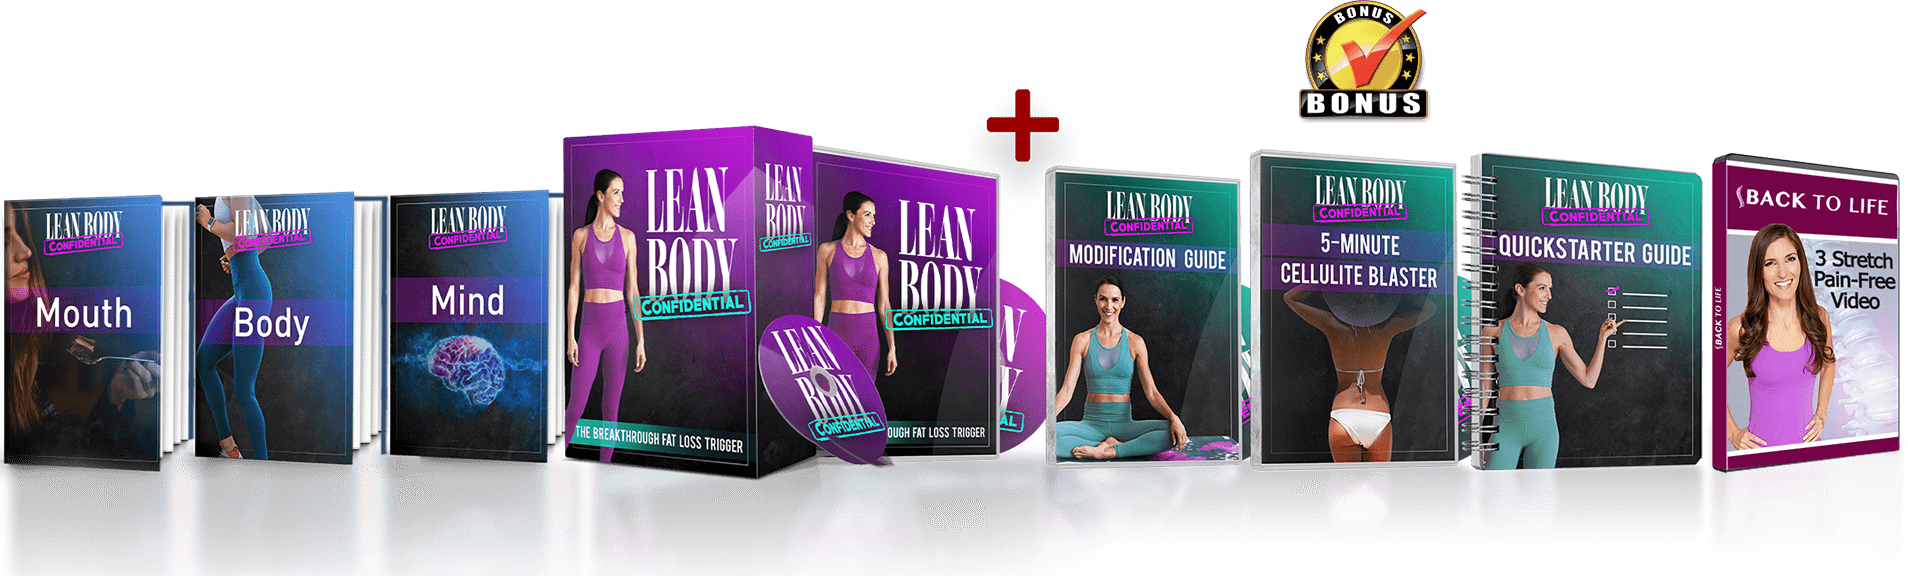 Lean Body ConFidential Reviews - Effective Method for Weight Loss